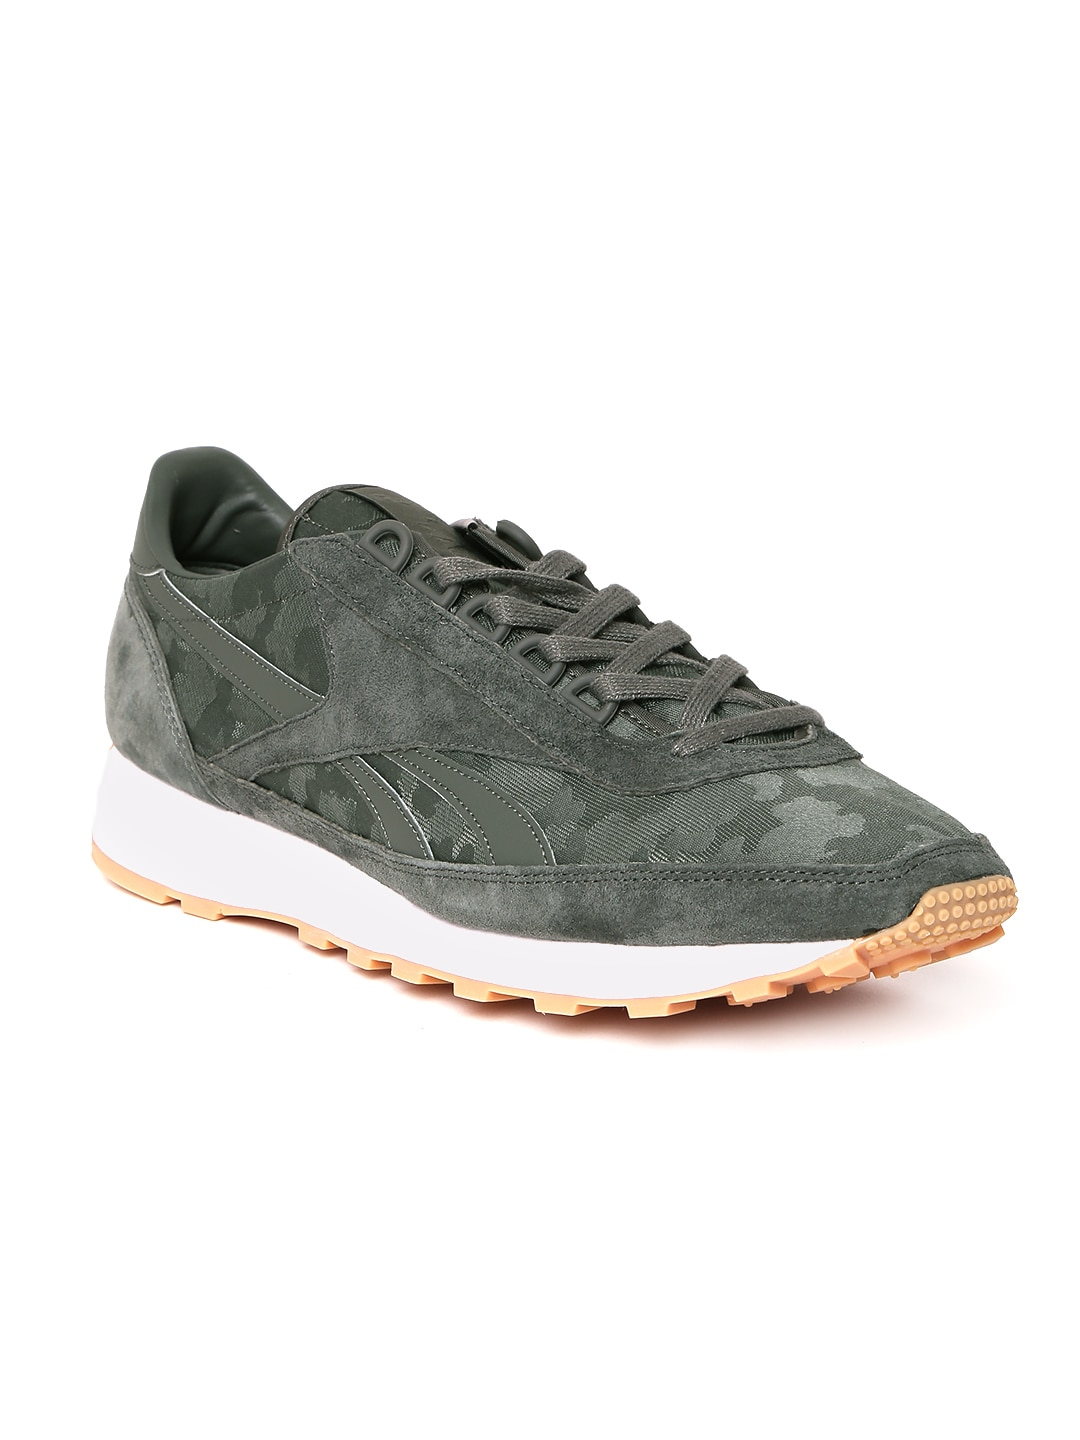 0449b0ea956 Reebok Leather Shoes - Buy Reebok Leather Shoes online in India